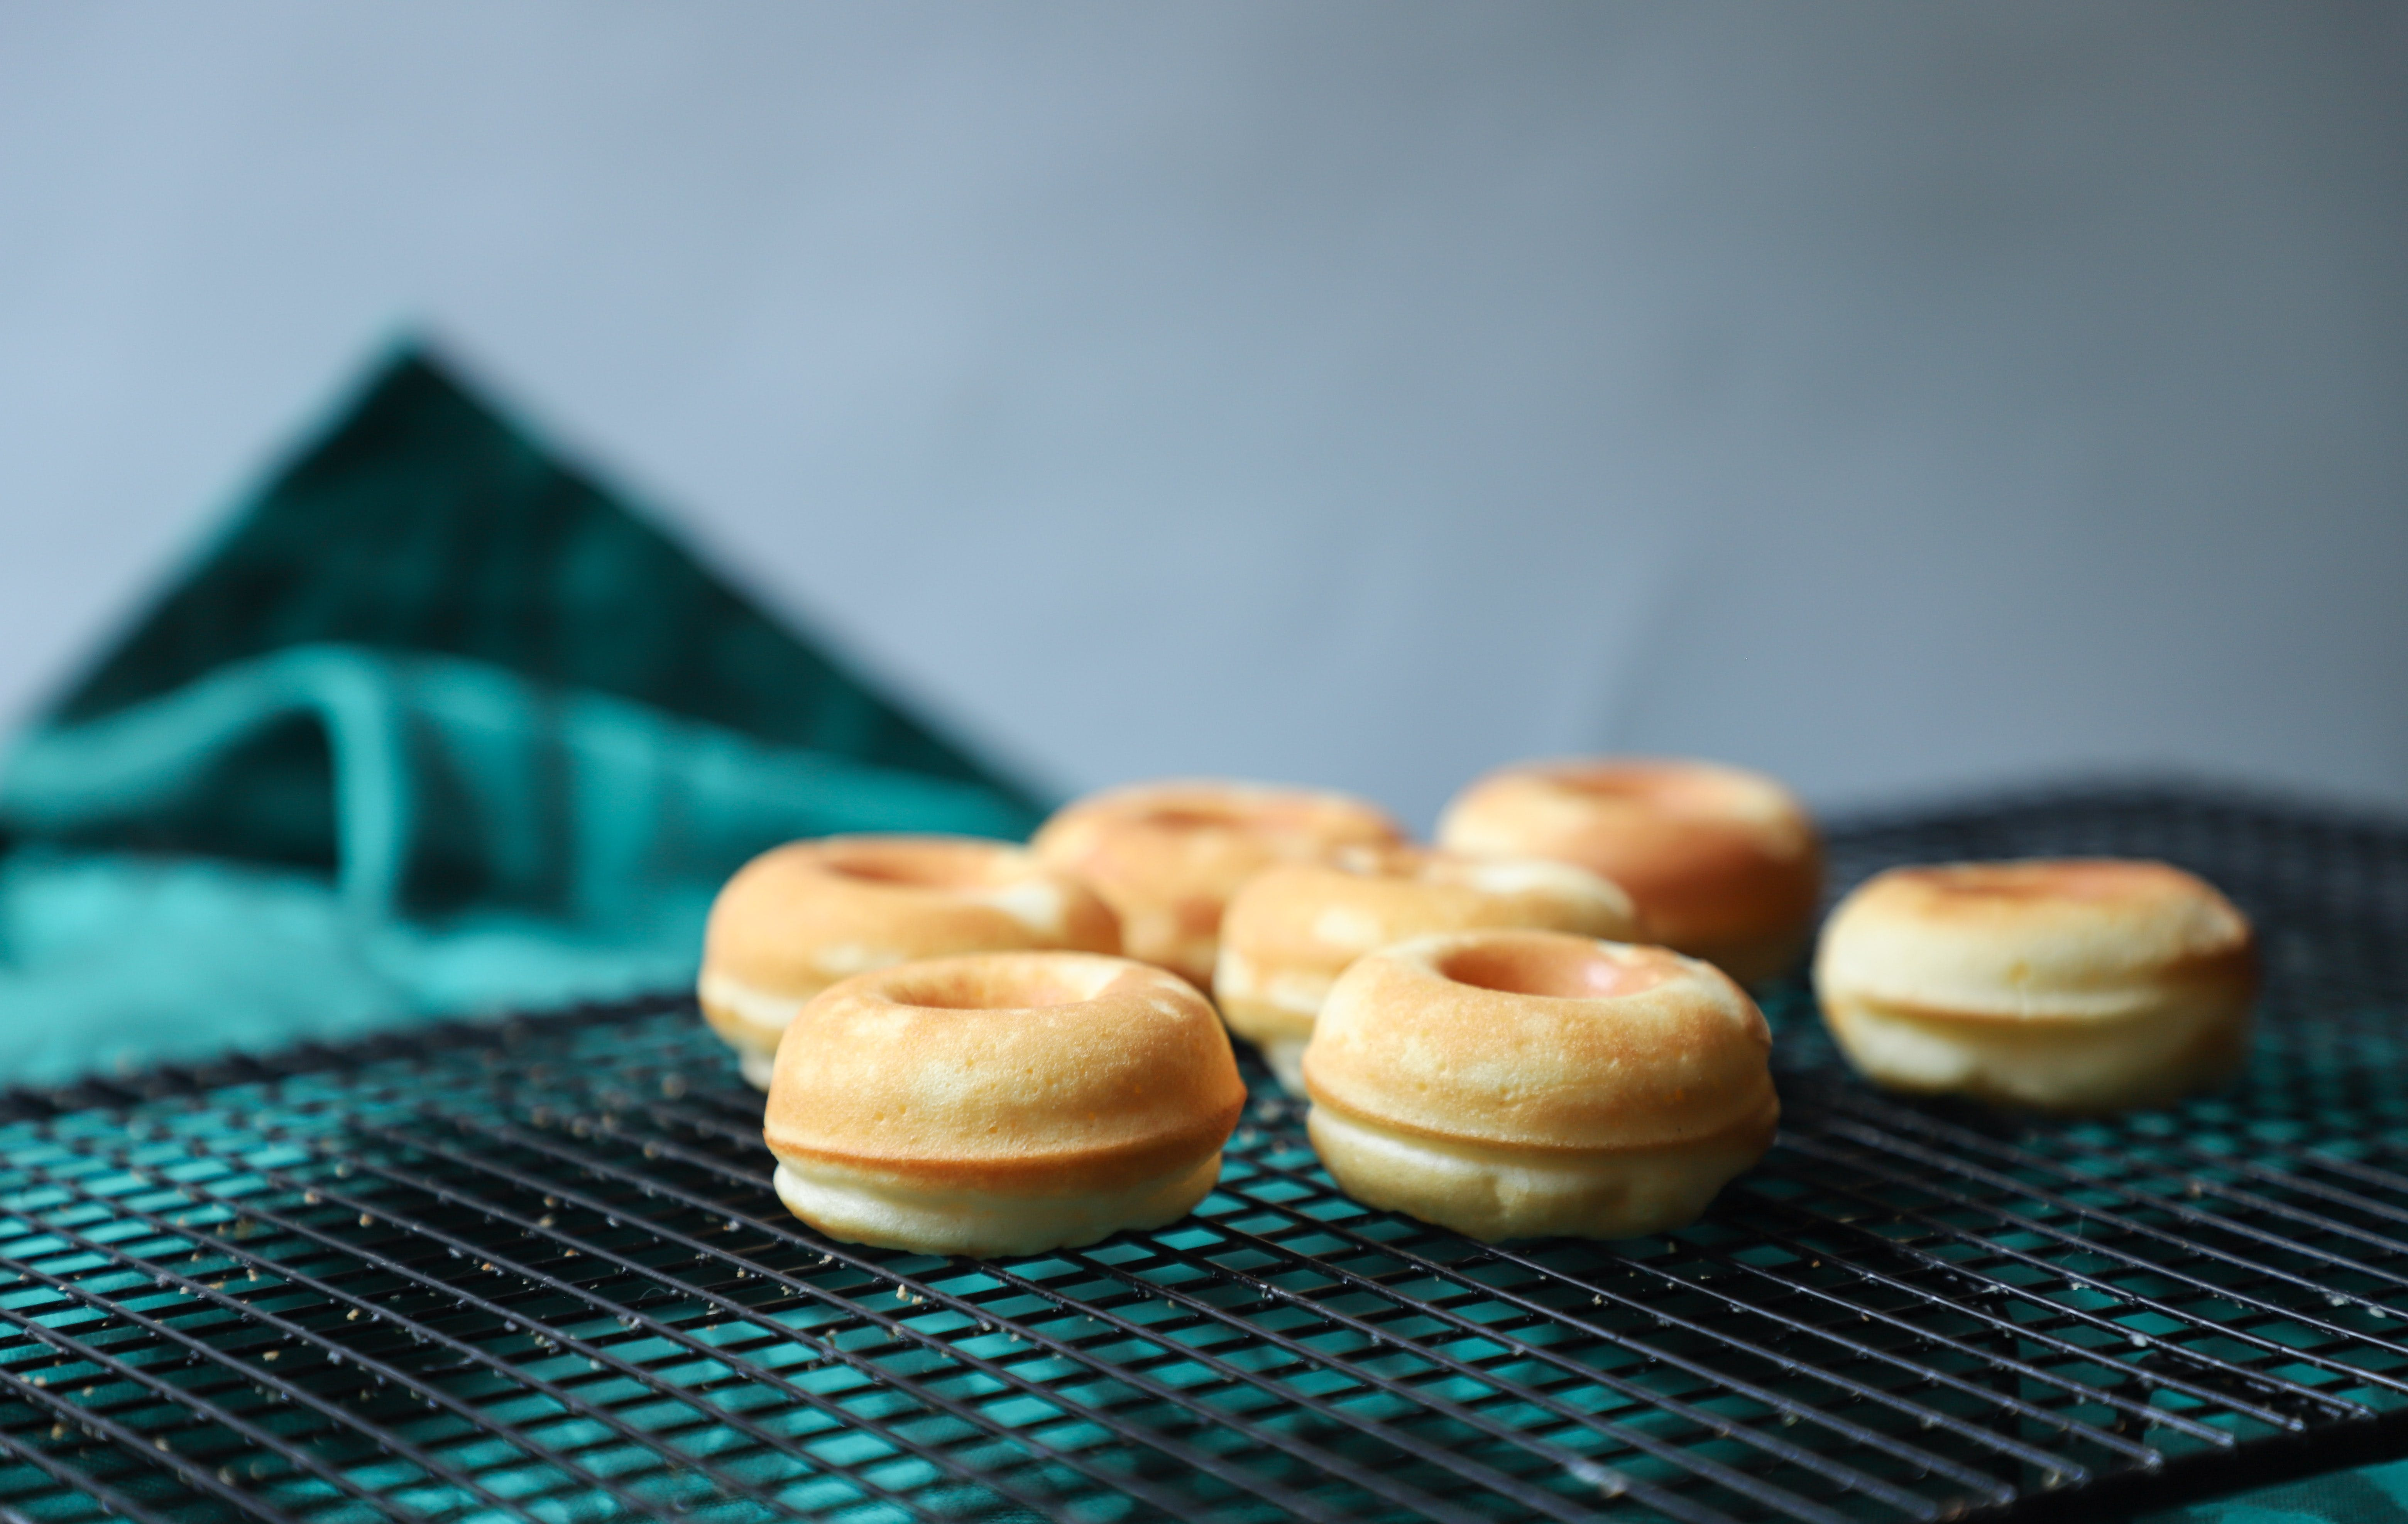 Baked Macaroons on Black Grill